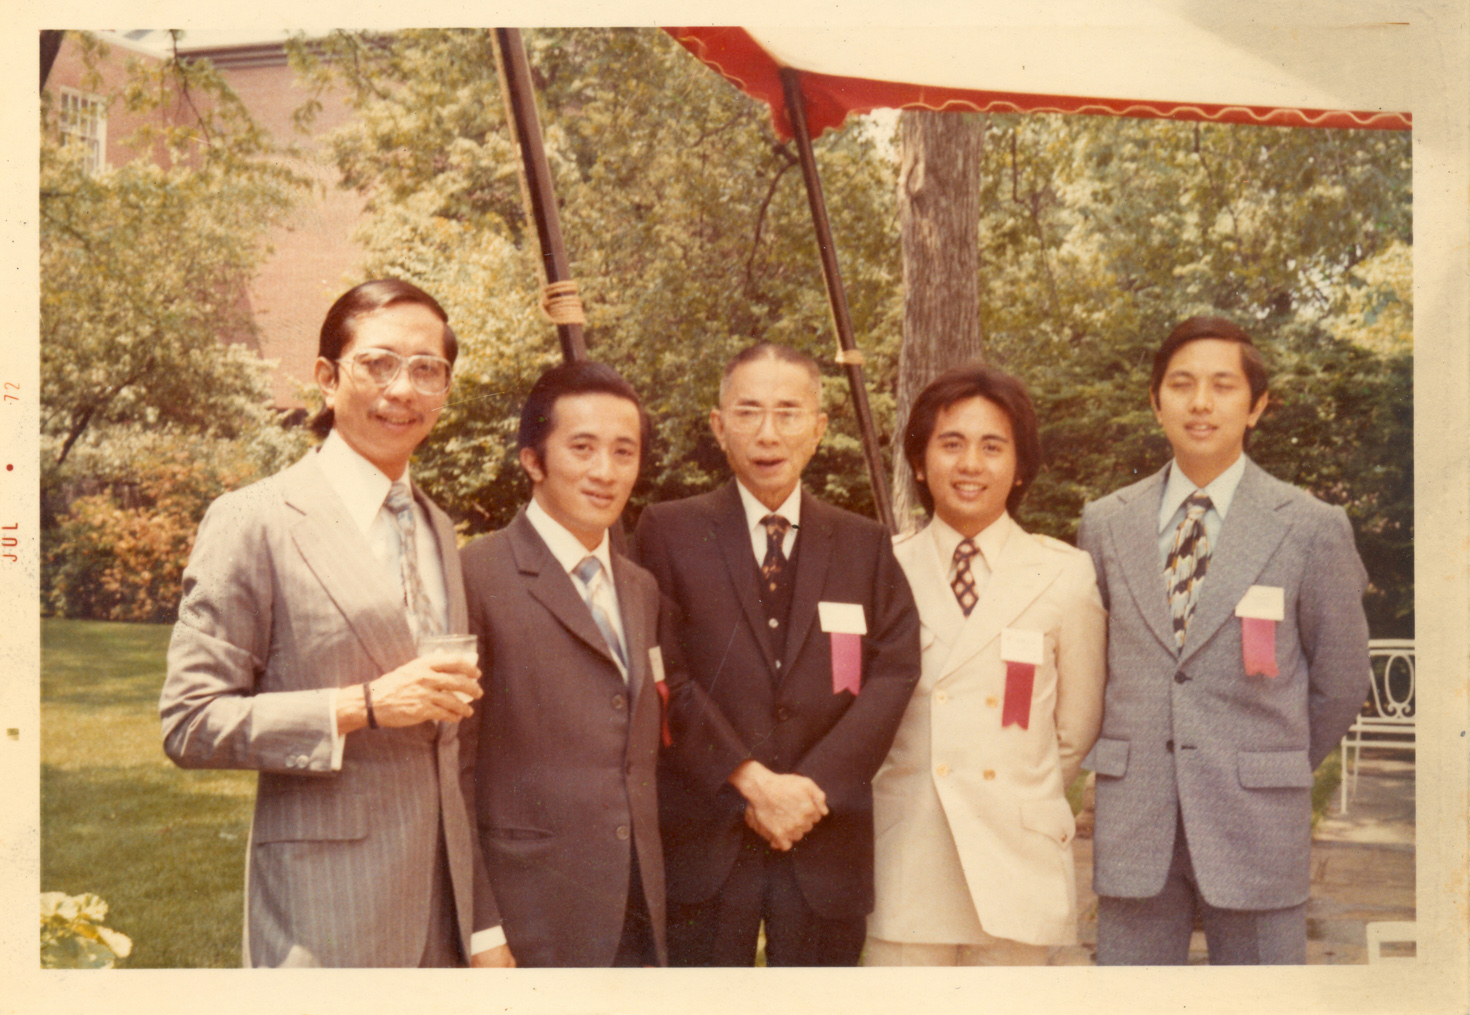 The brothers with Don Eñing at Harvard University in June 1972